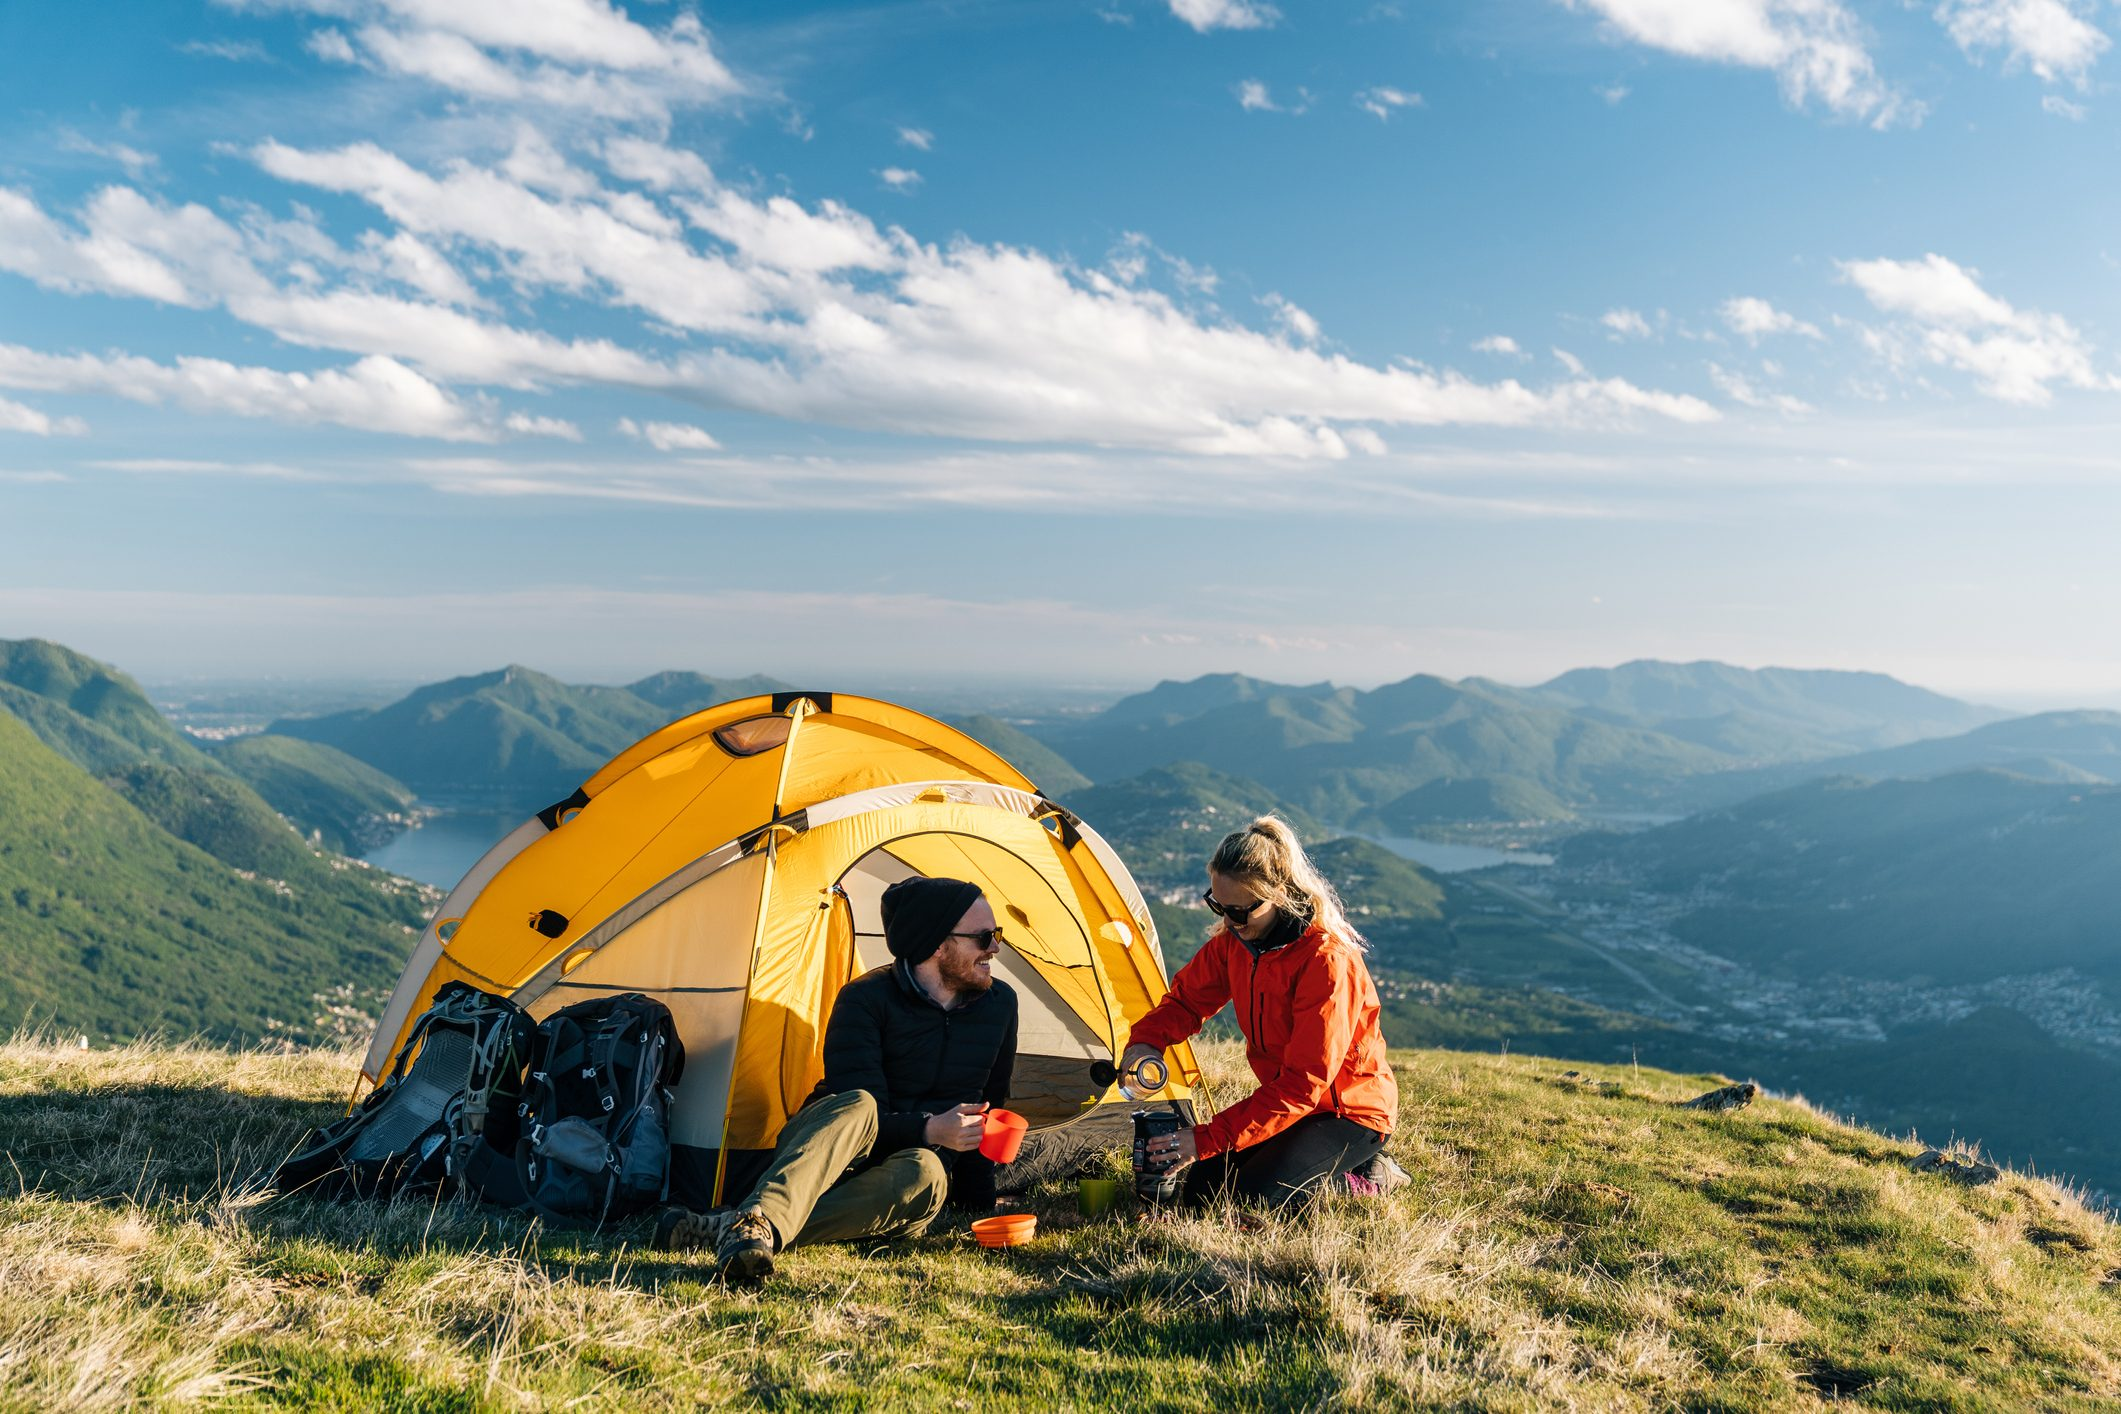 Couple camping on mountain top, prepare food and beverages next to tent